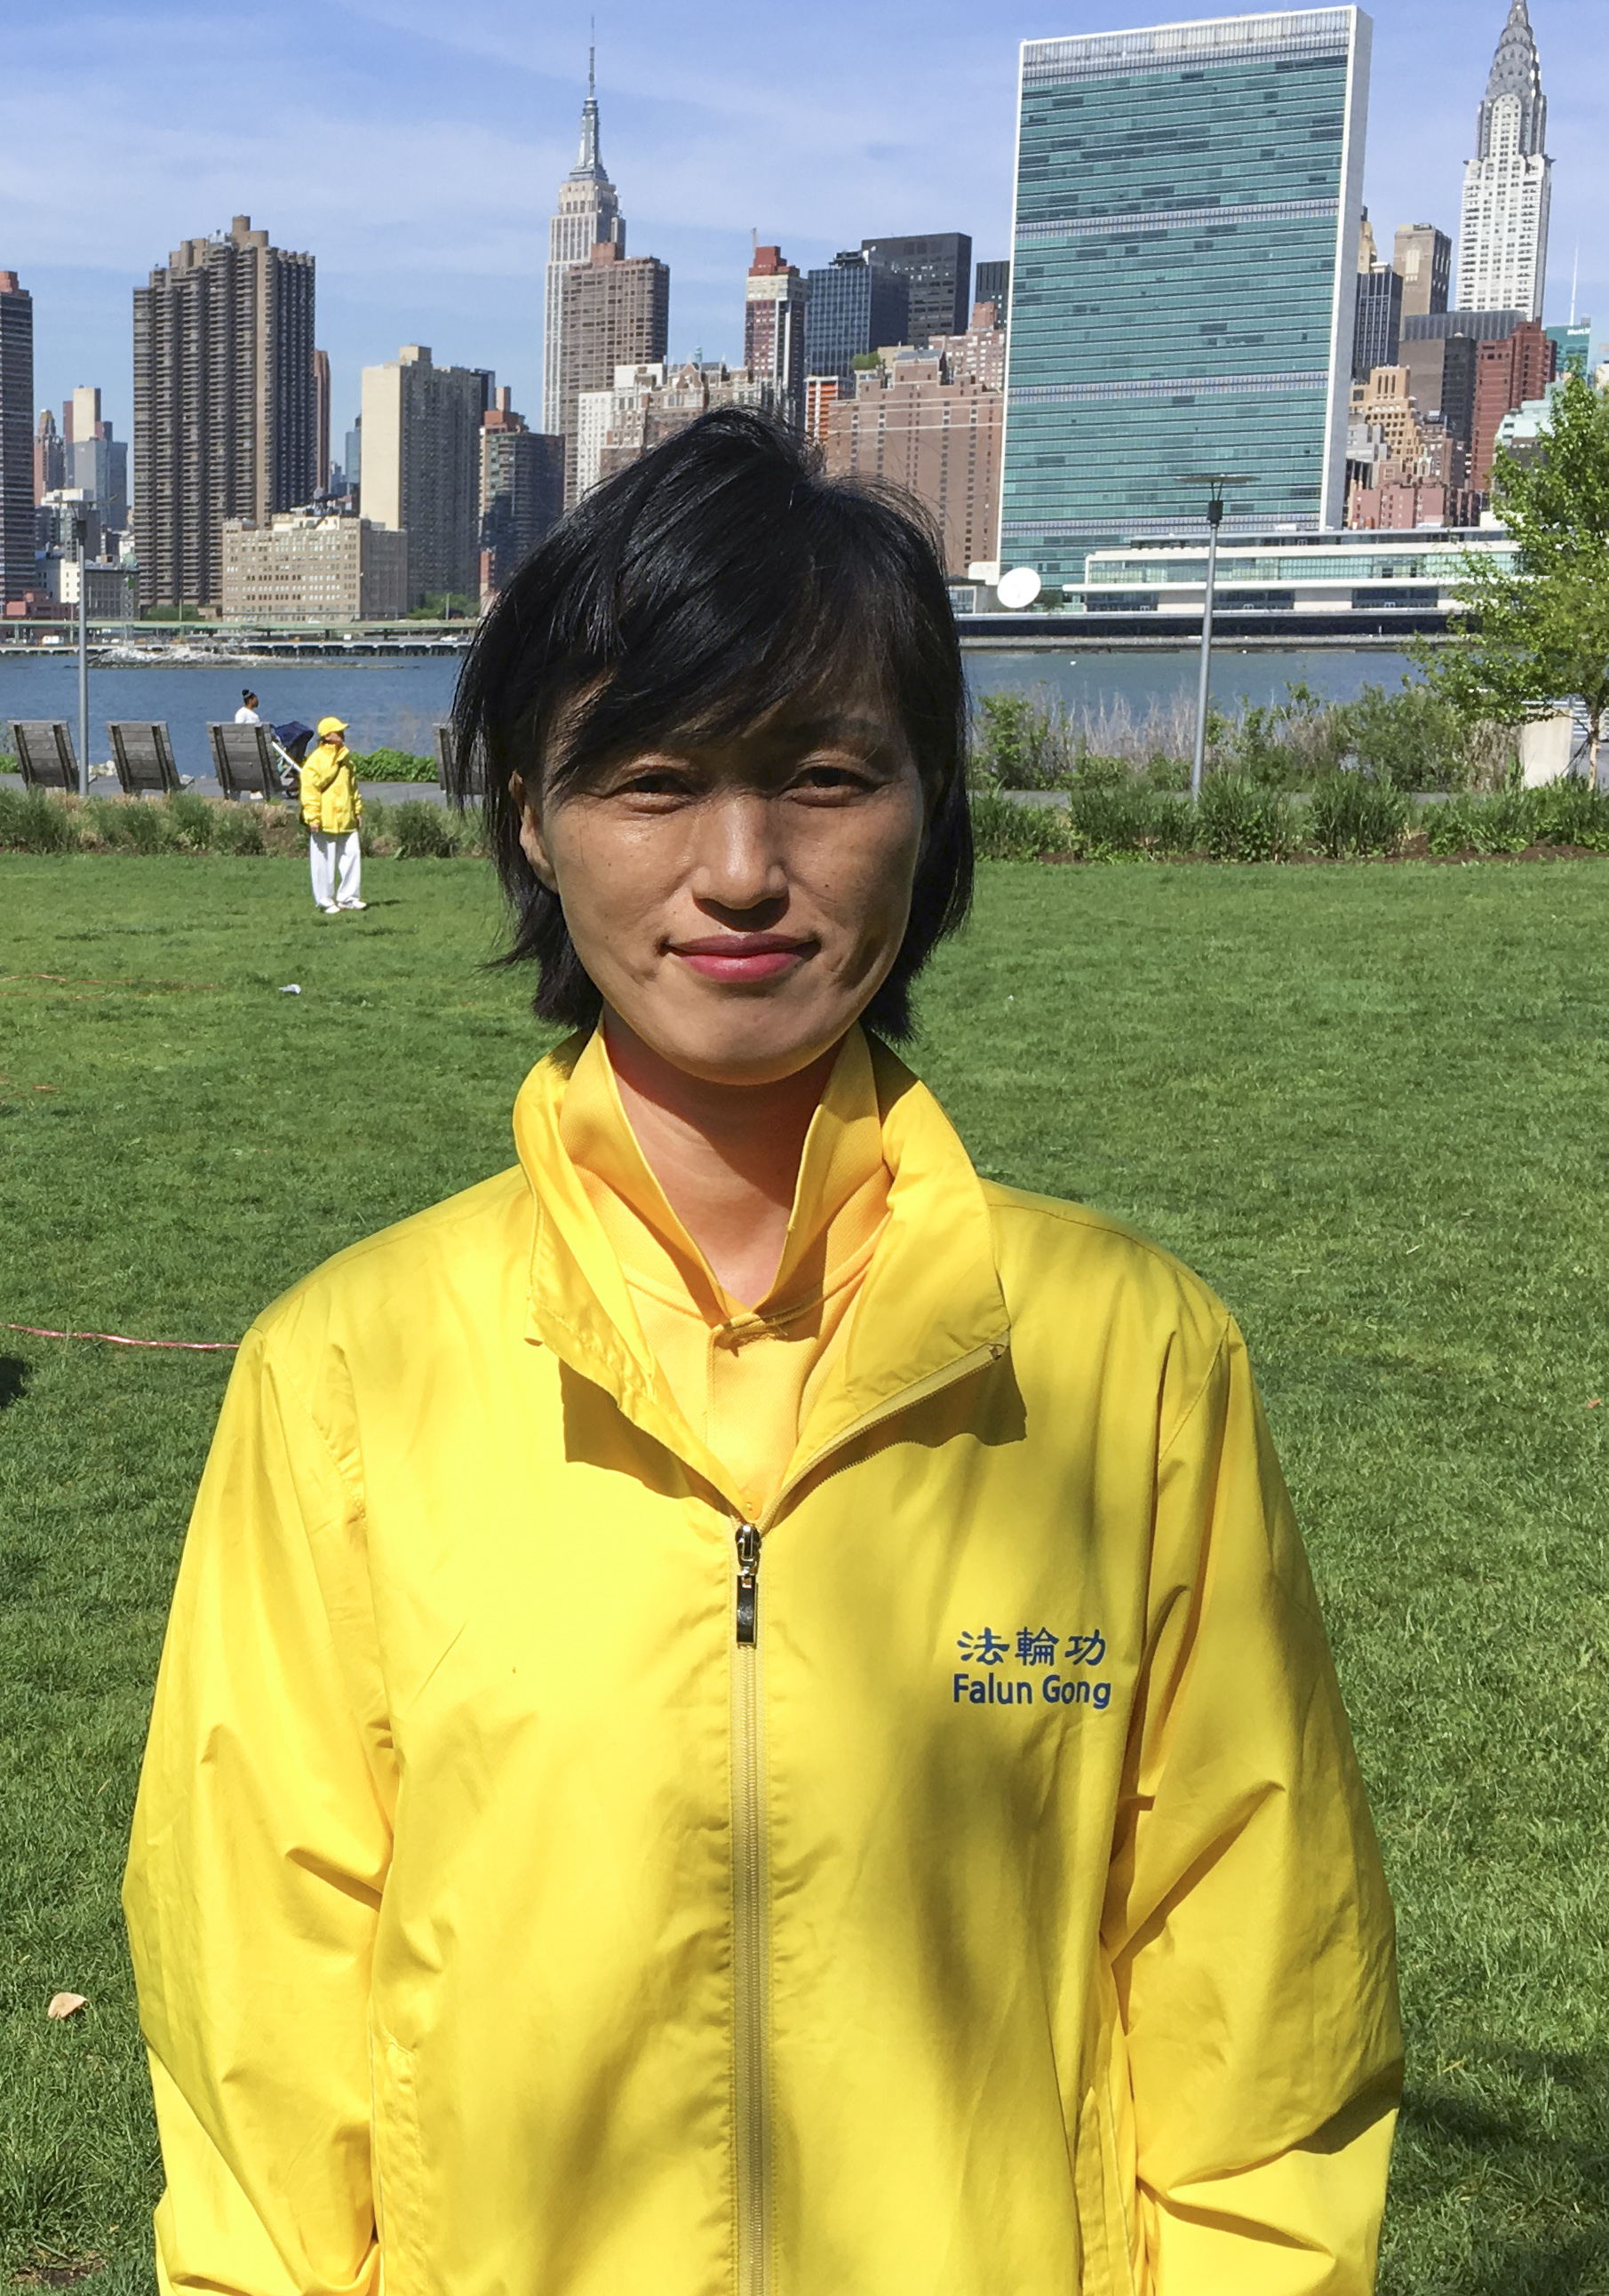 Choi Kyung-soon, a Falun Gong practitioner from South Korea, joins a character formation event at Gantry Plaza State Park on May 12, 2016. (Larry Ong/Epoch Times)